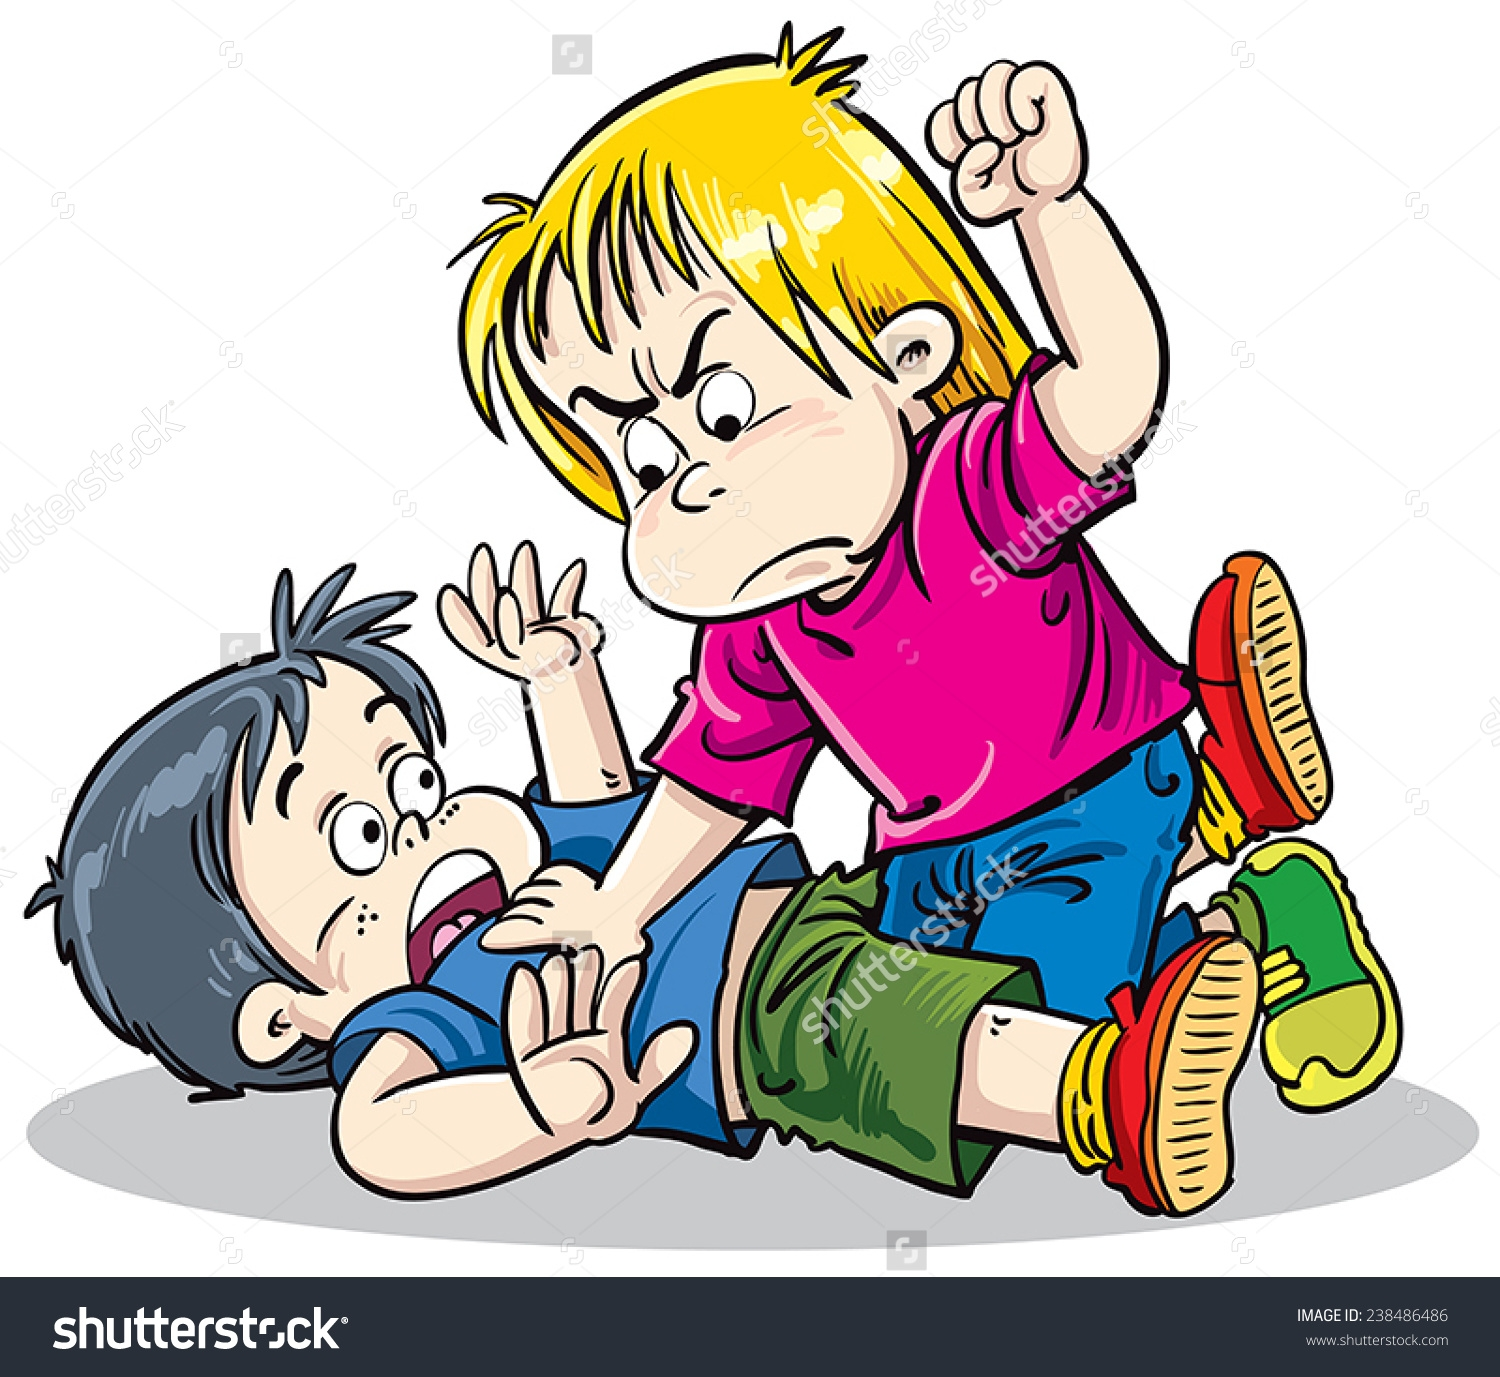 Fighting station . Fight clipart